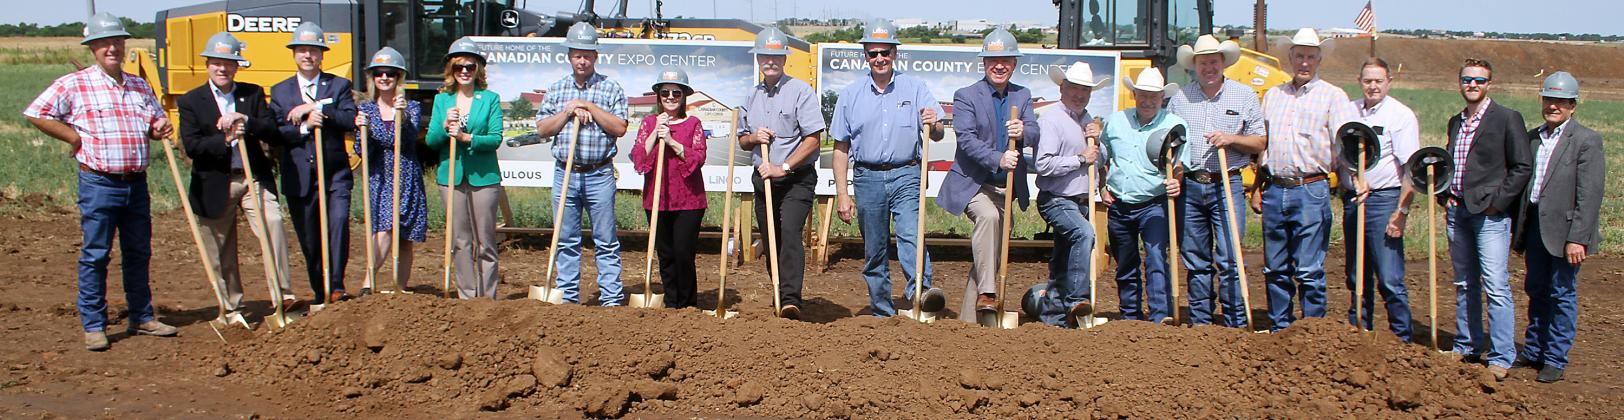 Groundbreaking for the new Canadian County Fairgrounds was celebrated last week